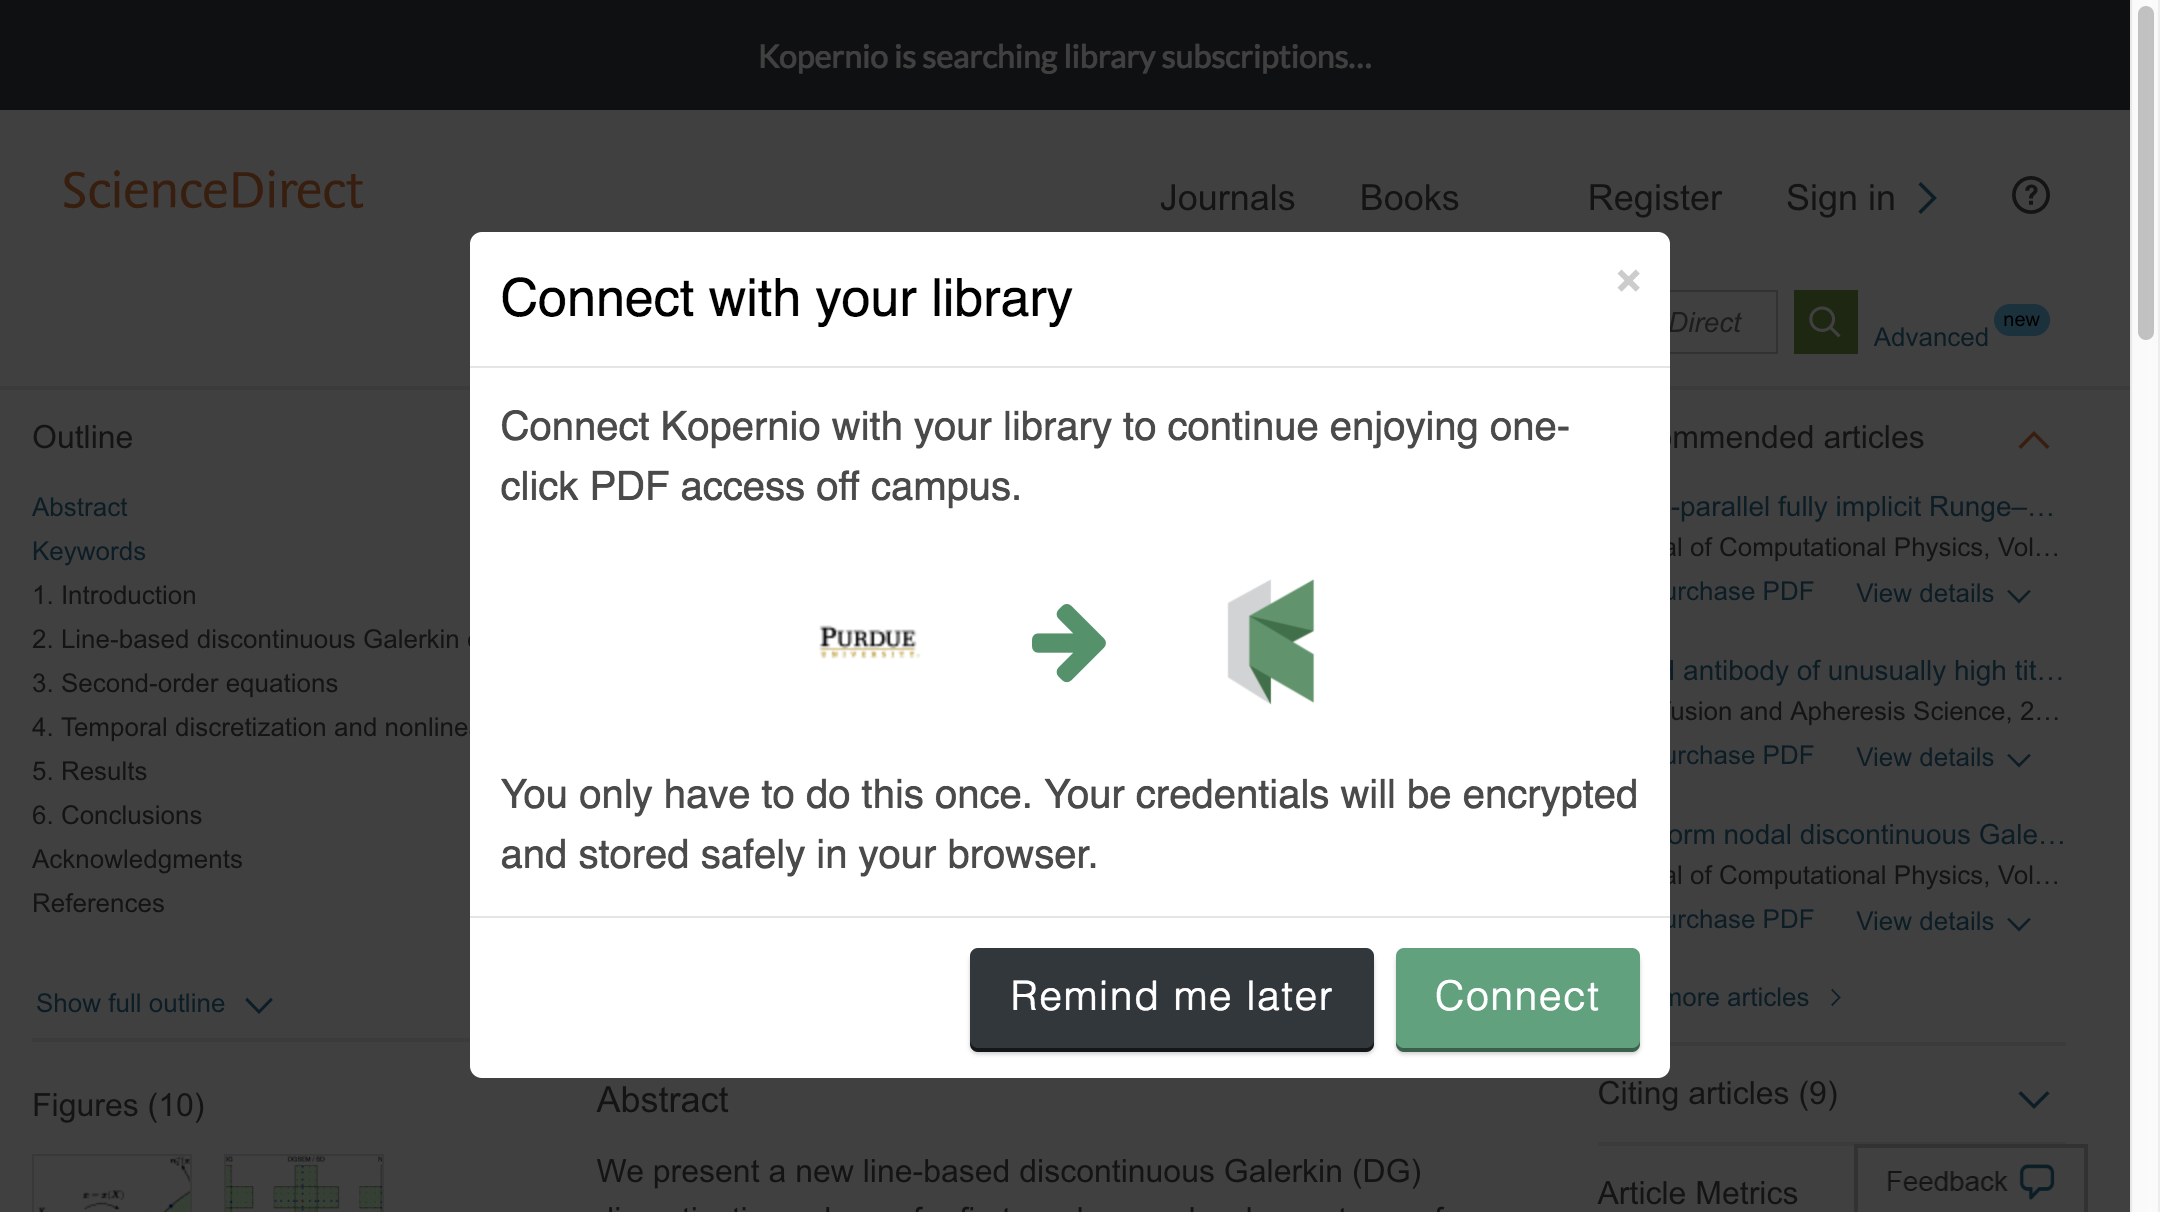 Connect to library prompt for off-campus access to Purdue University e-resources.